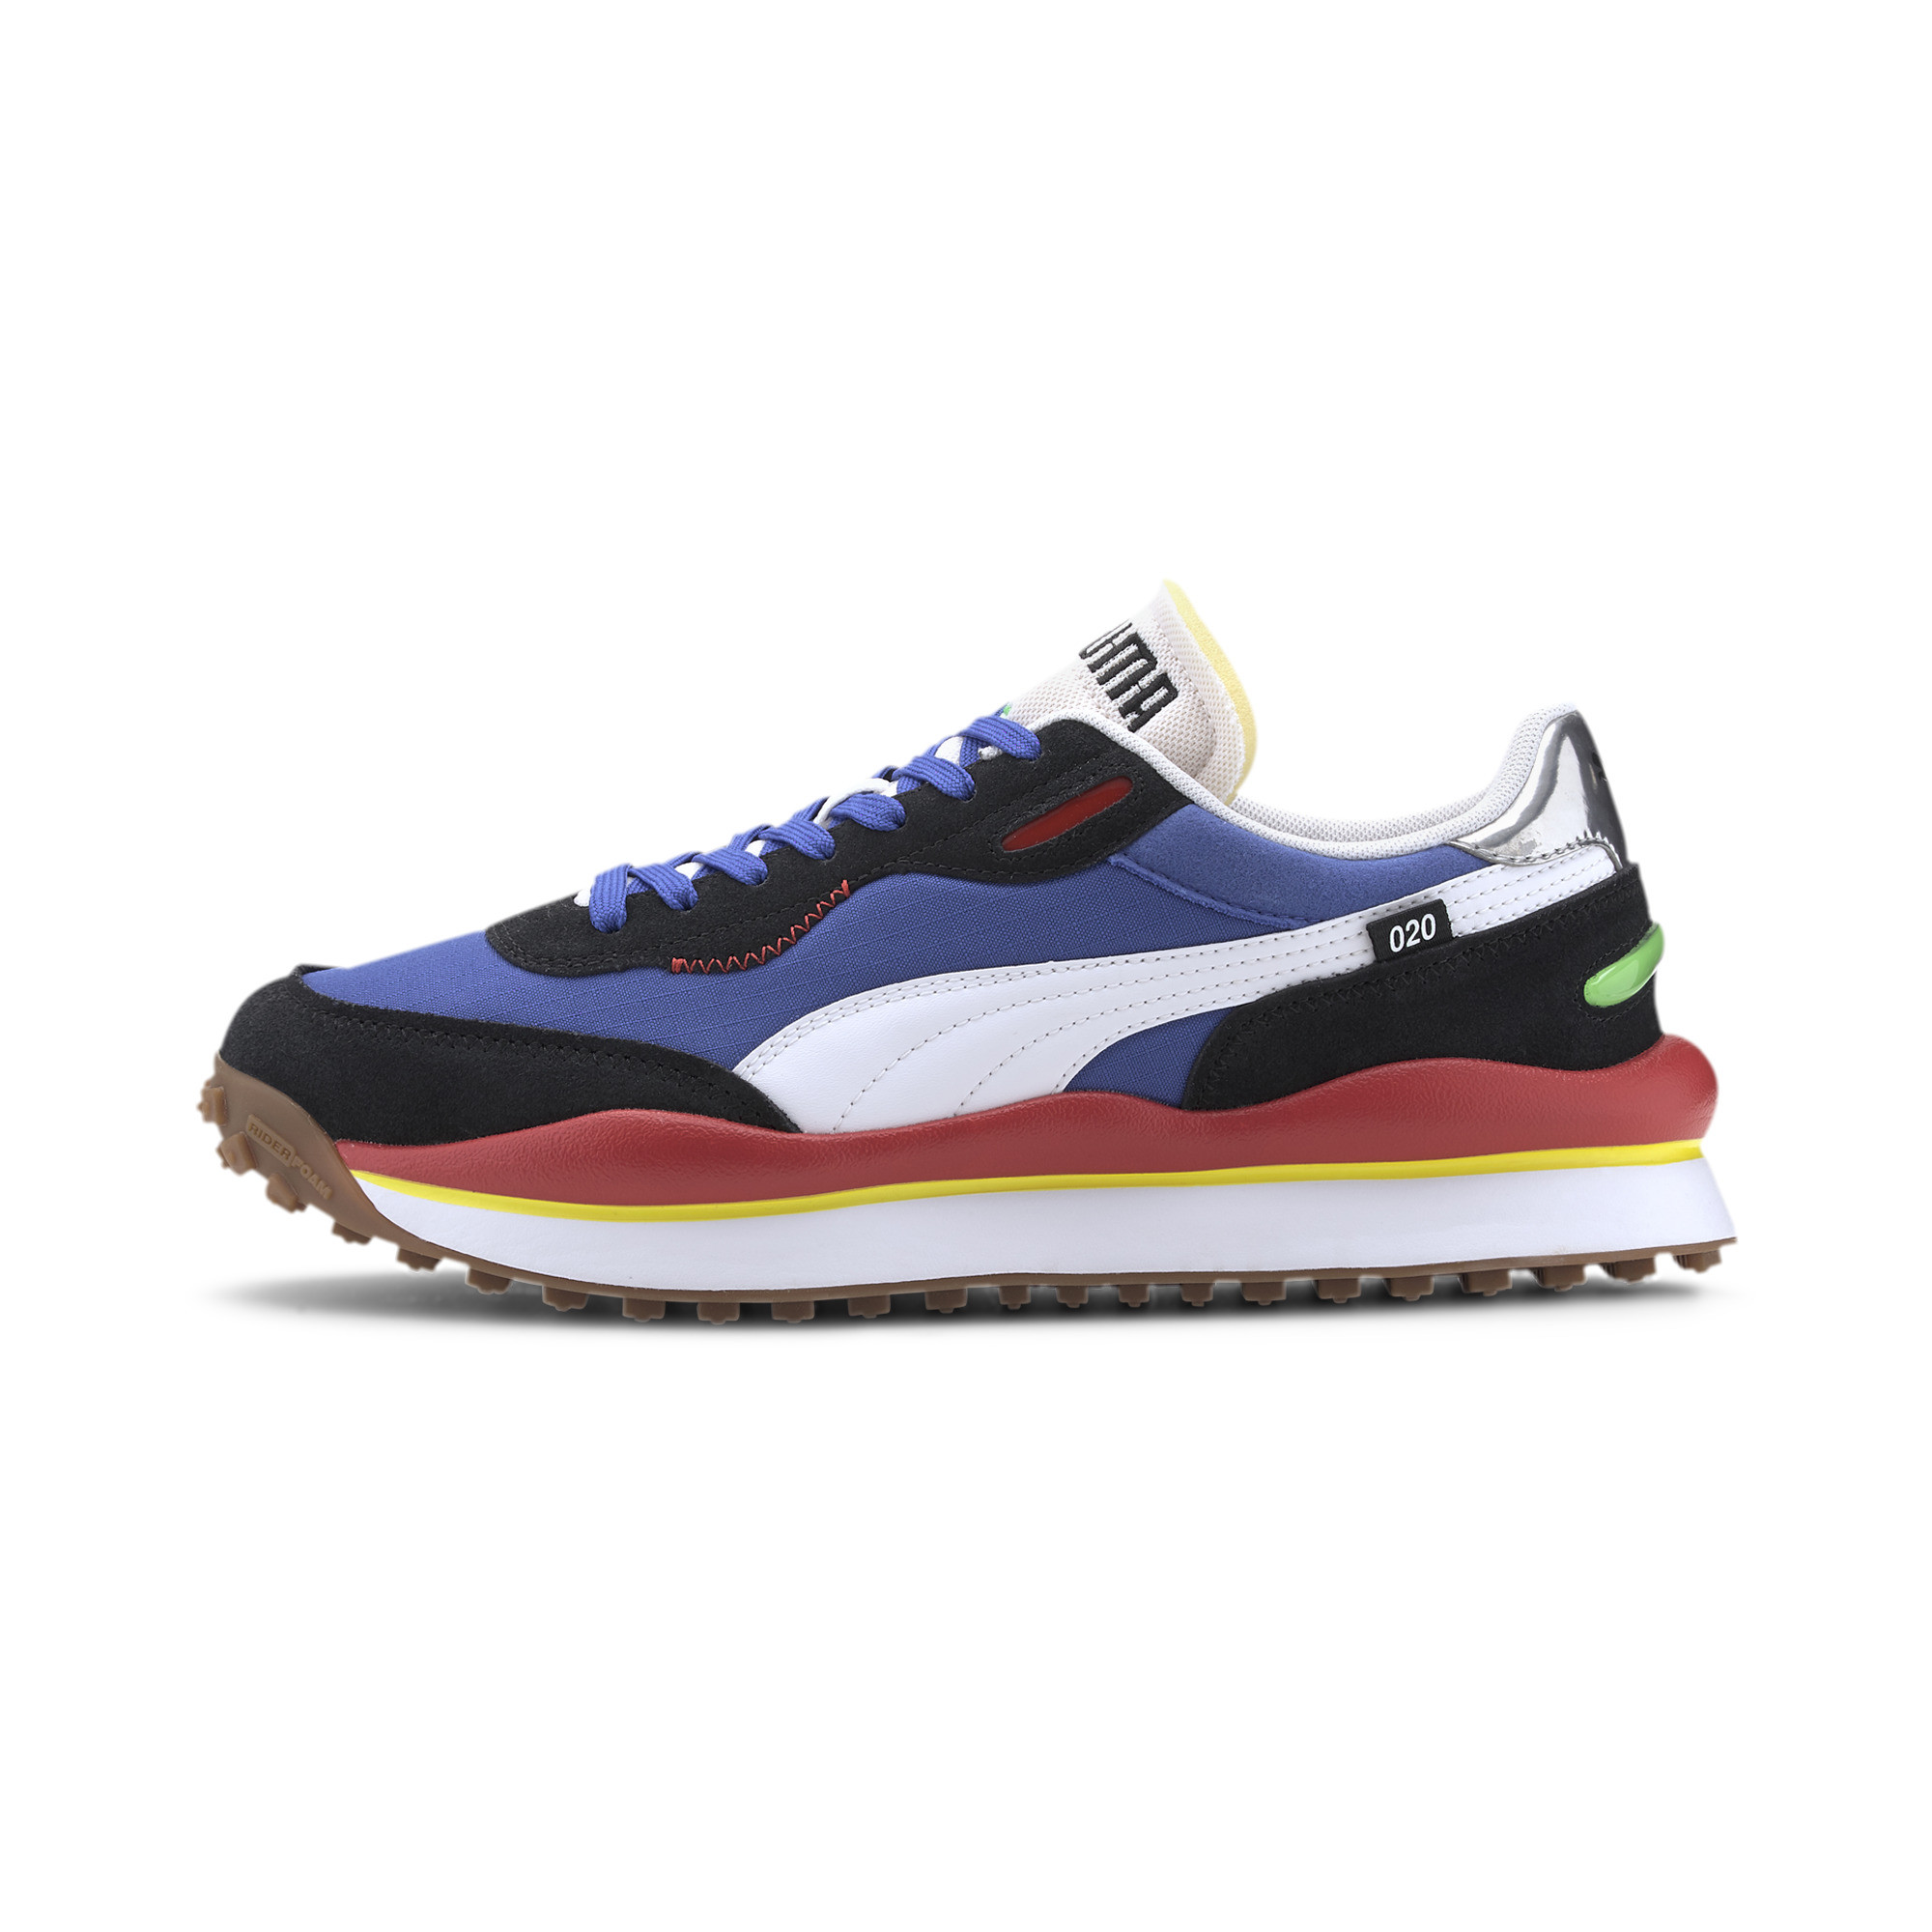 PUMA STYLE RIDER PLAY ON PACK